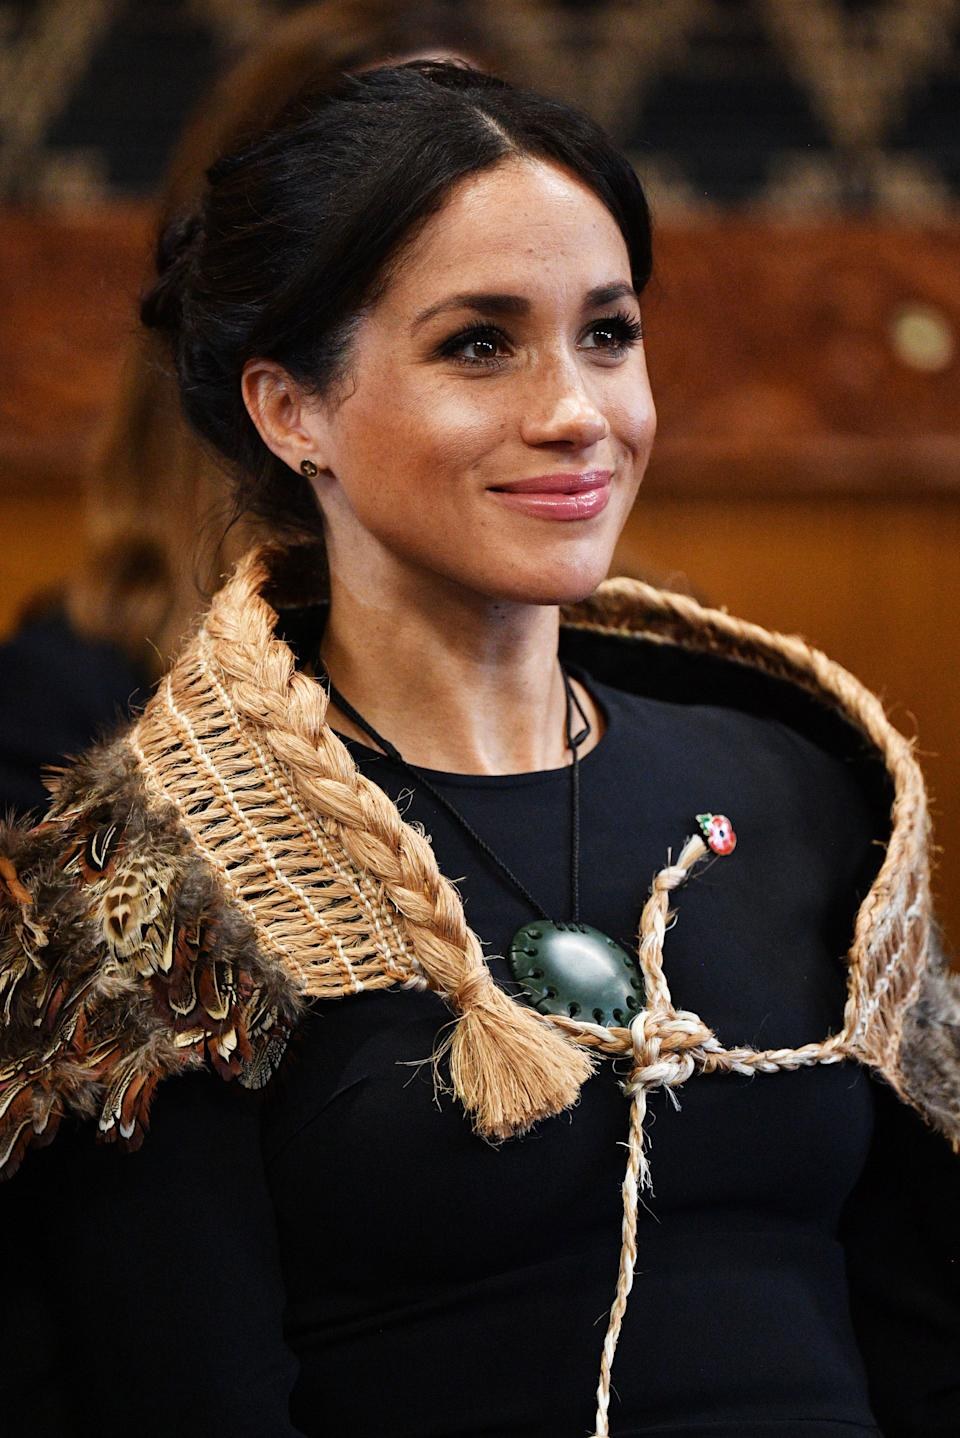 ROTORUA, NEW ZEALAND - OCTOBER 31: Meghan, Duchess of Sussex visits Te Papaiouru Marae on October 31, 2018 in Rotorua, New Zealand. The Duke and Duchess of Sussex are on their official 16-day Autumn tour visiting cities in Australia, Fiji, Tonga and New Zealand. (Photo by Tim Rooke - Pool/Getty Images)